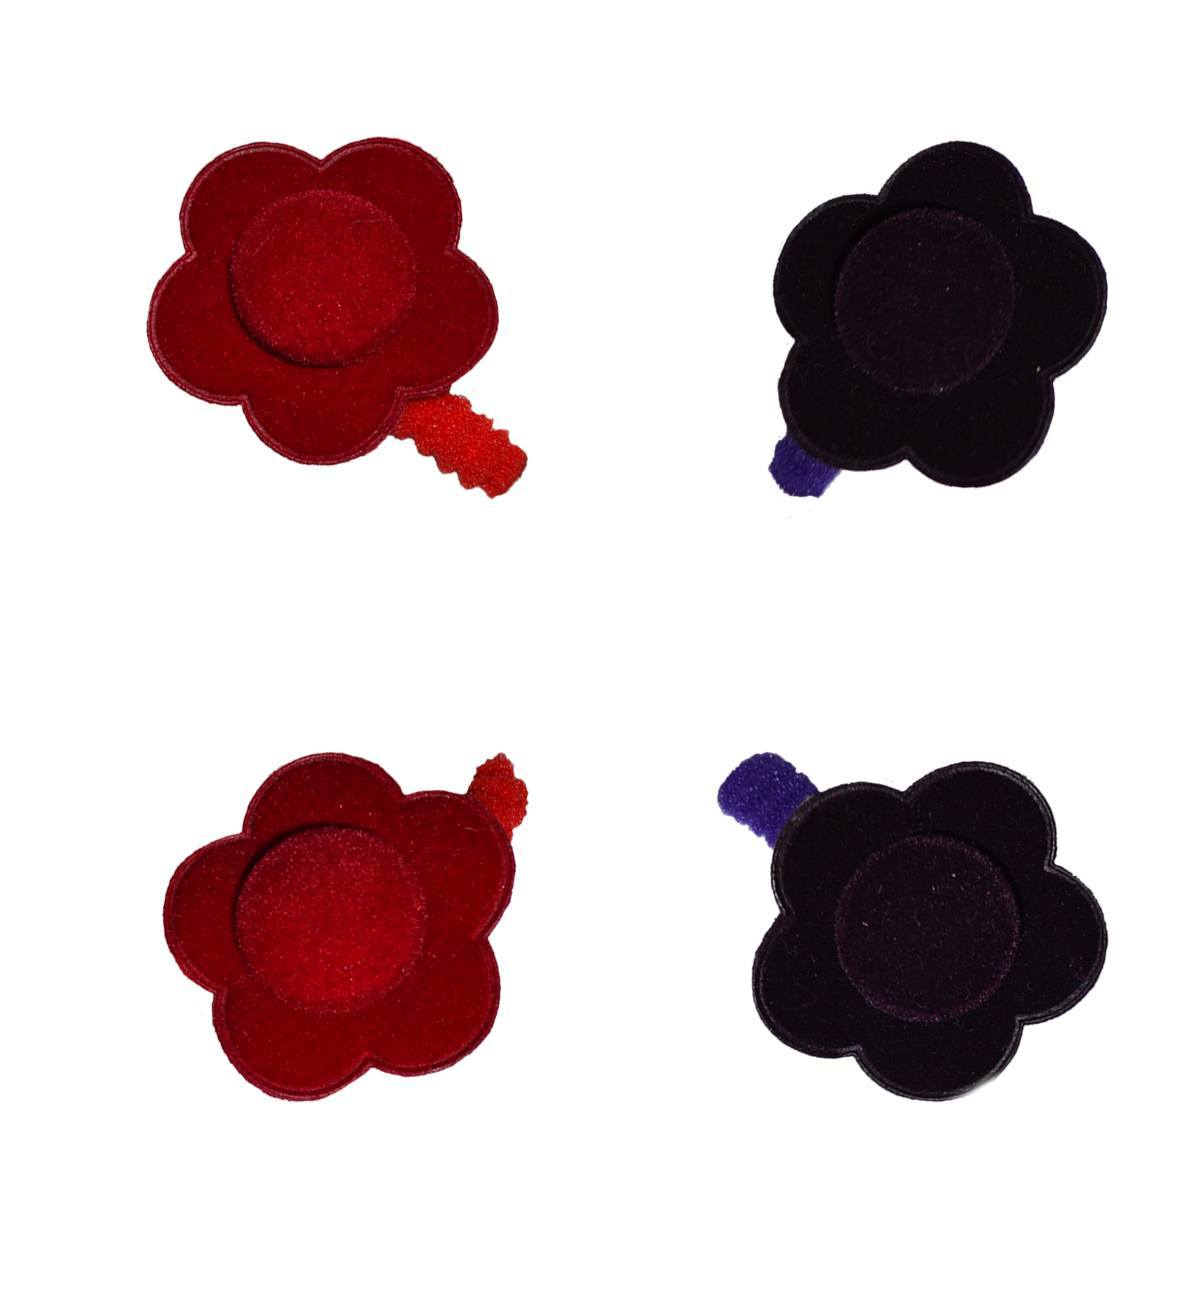 Spanish baby clothes | baby Hair accessories | Velvet flower hair ponies |babymaC  - 1